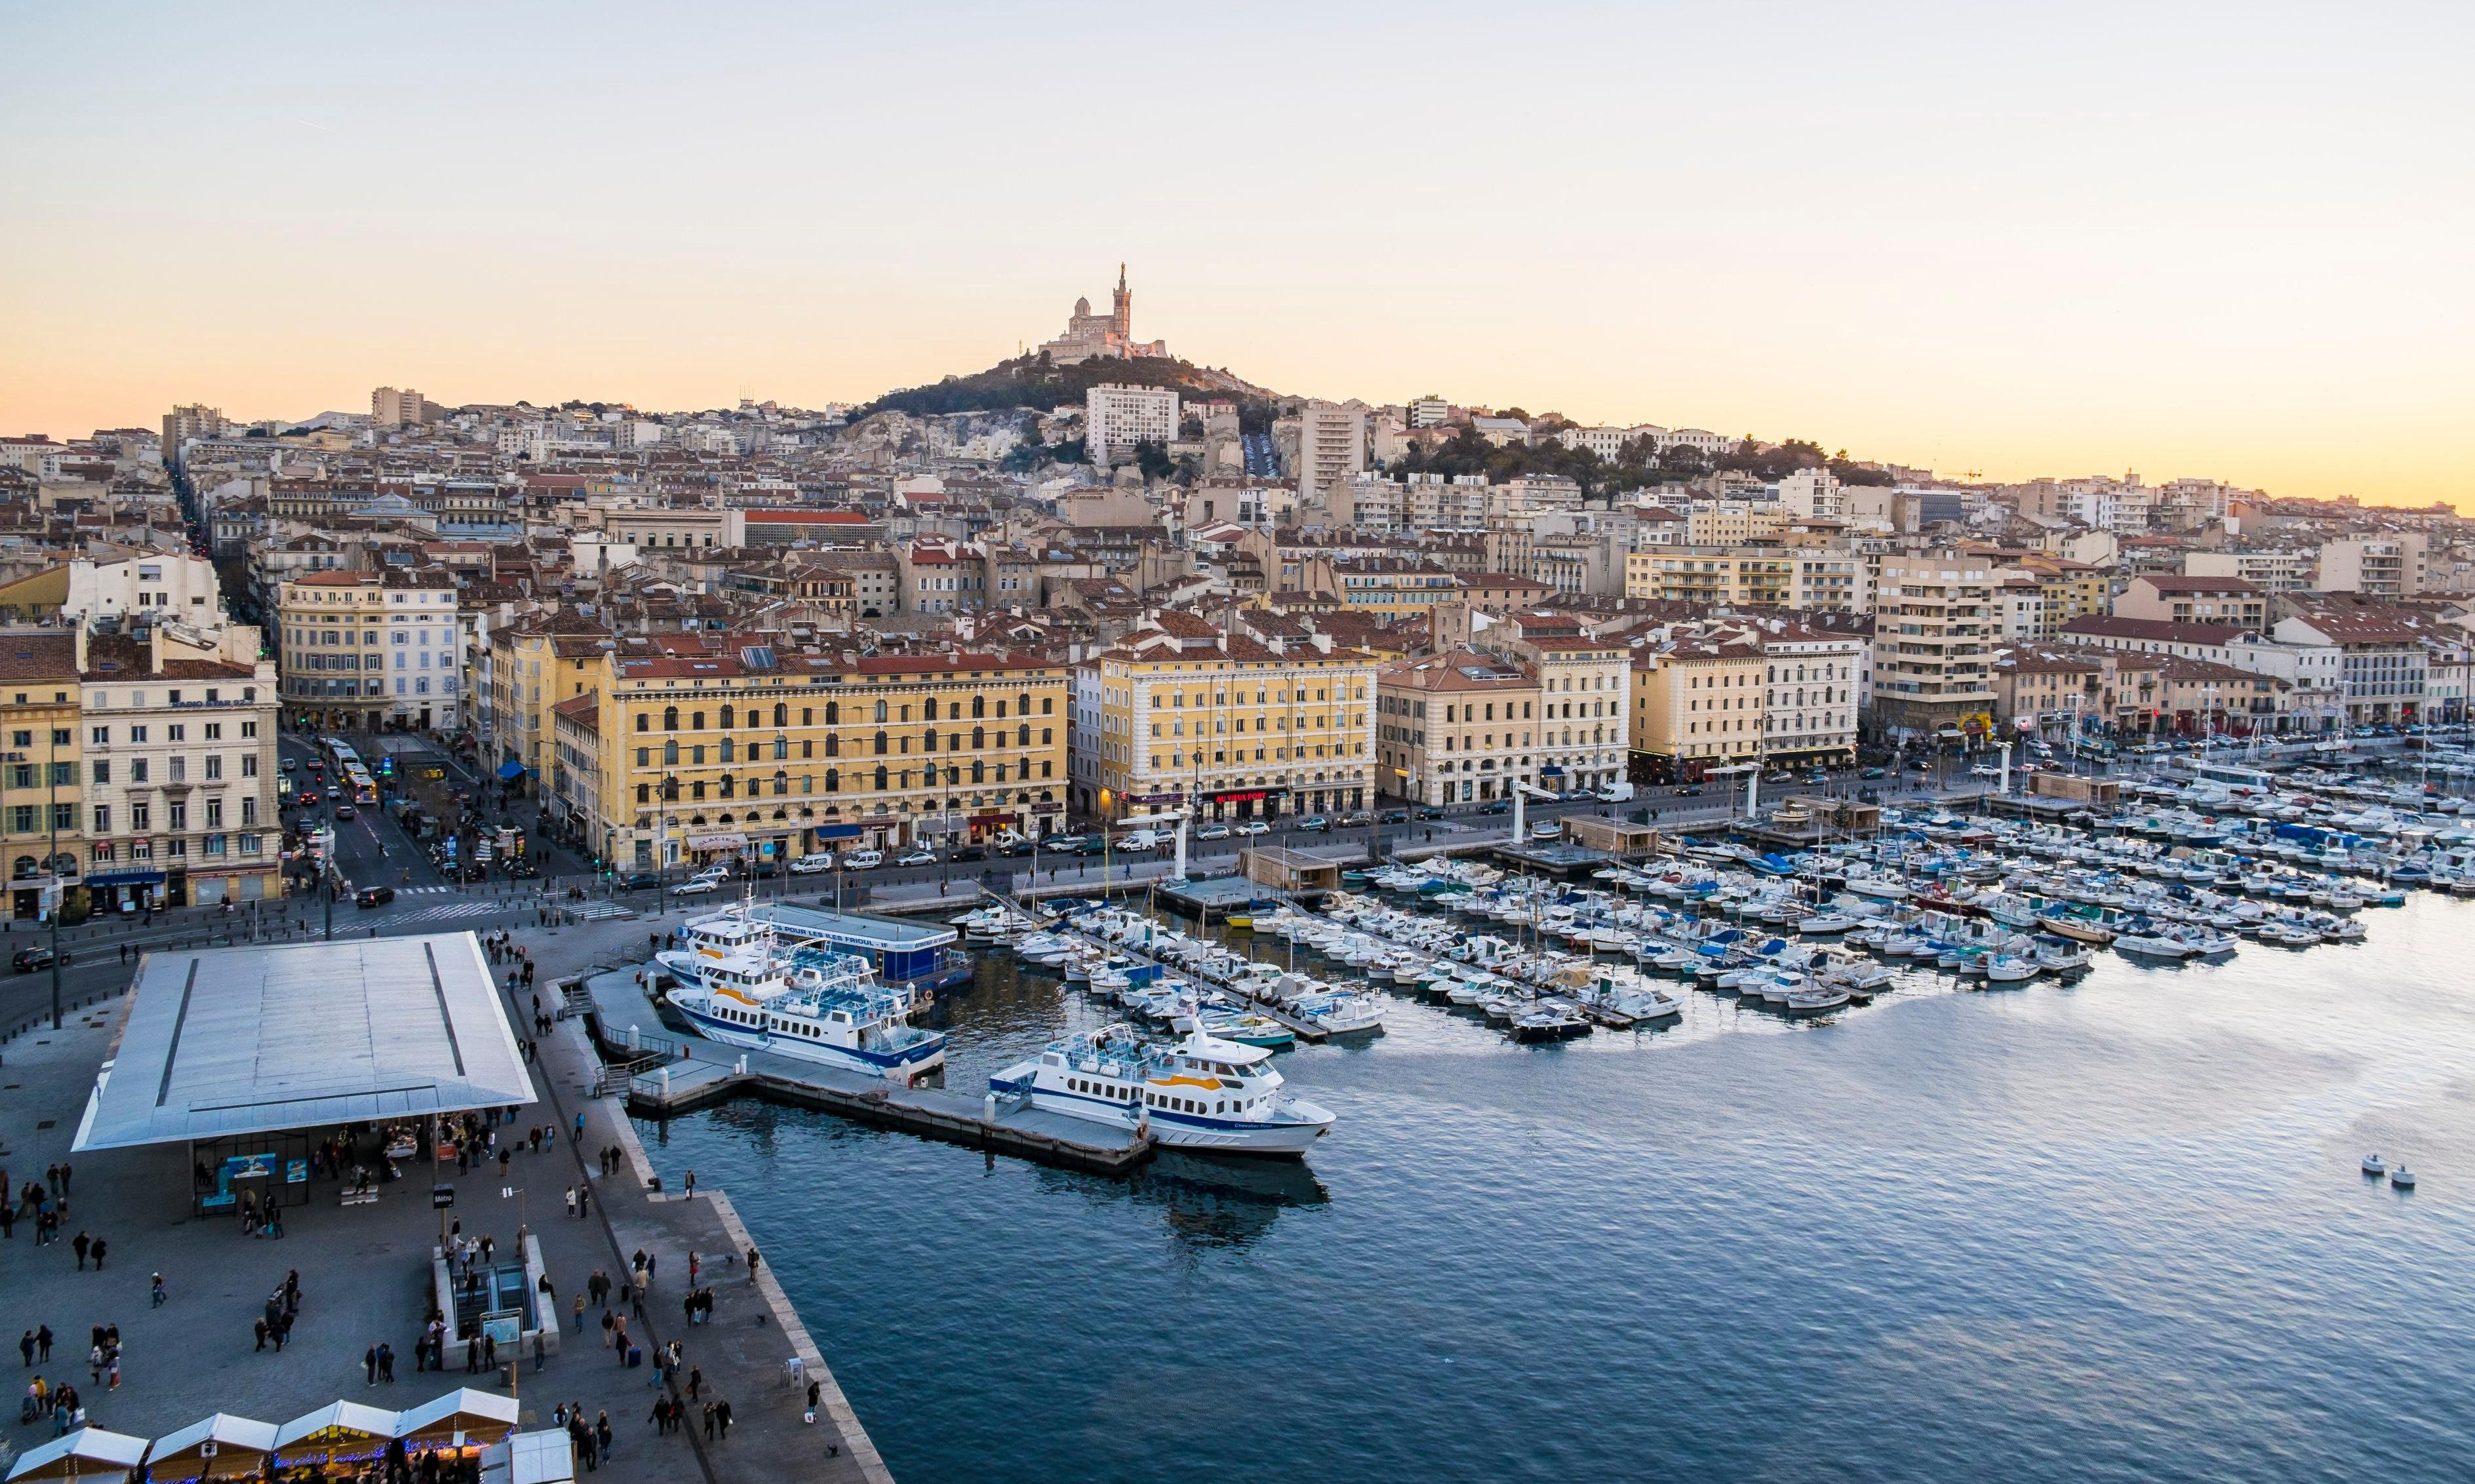 A local's guide to Marseille: 10 top tips